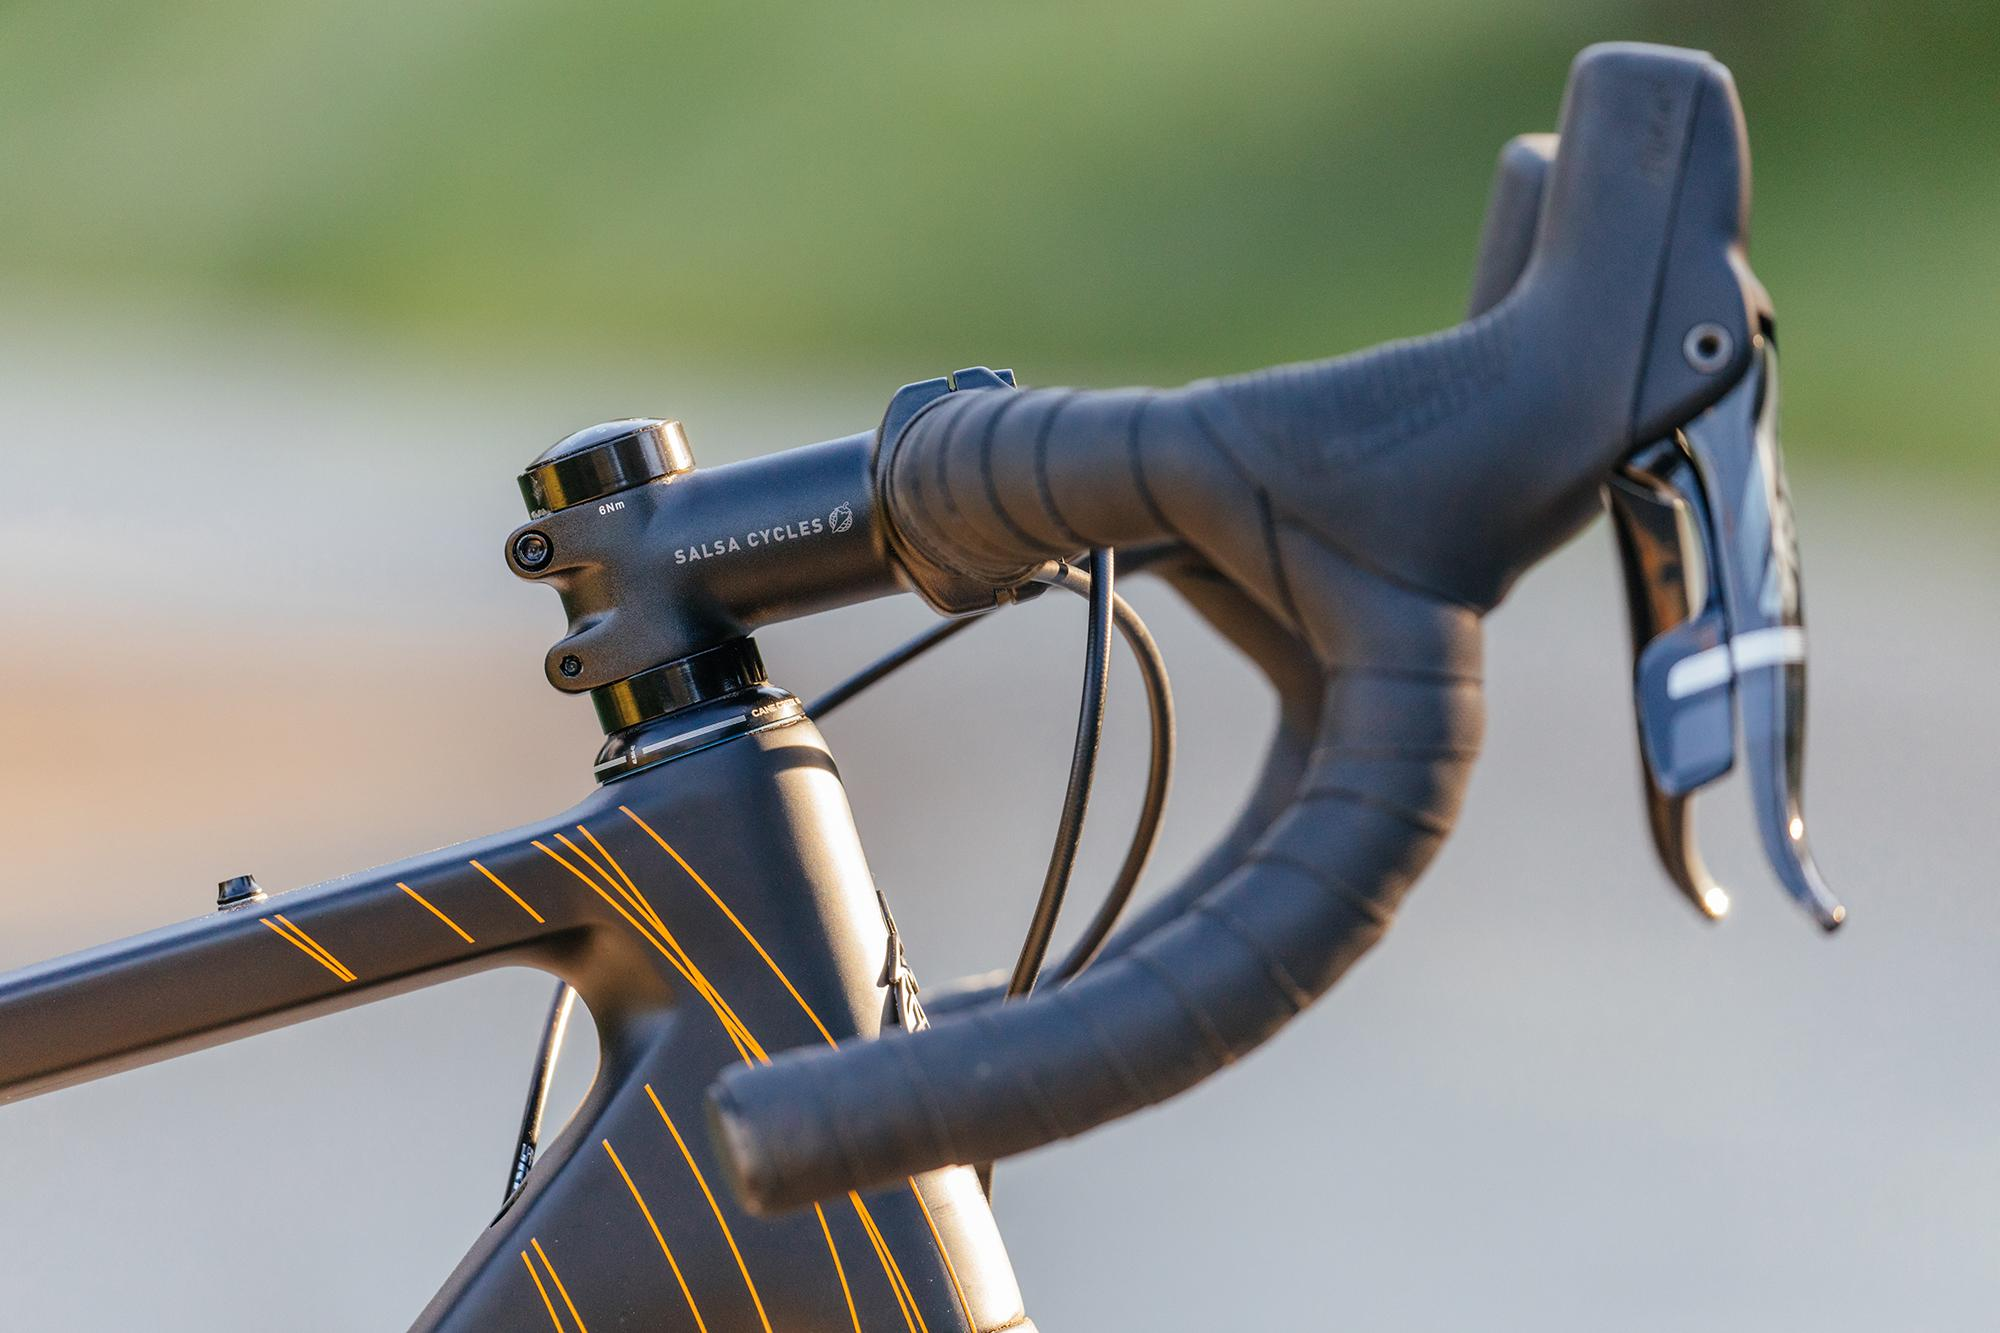 Warroad Carbon FORCE 1 700